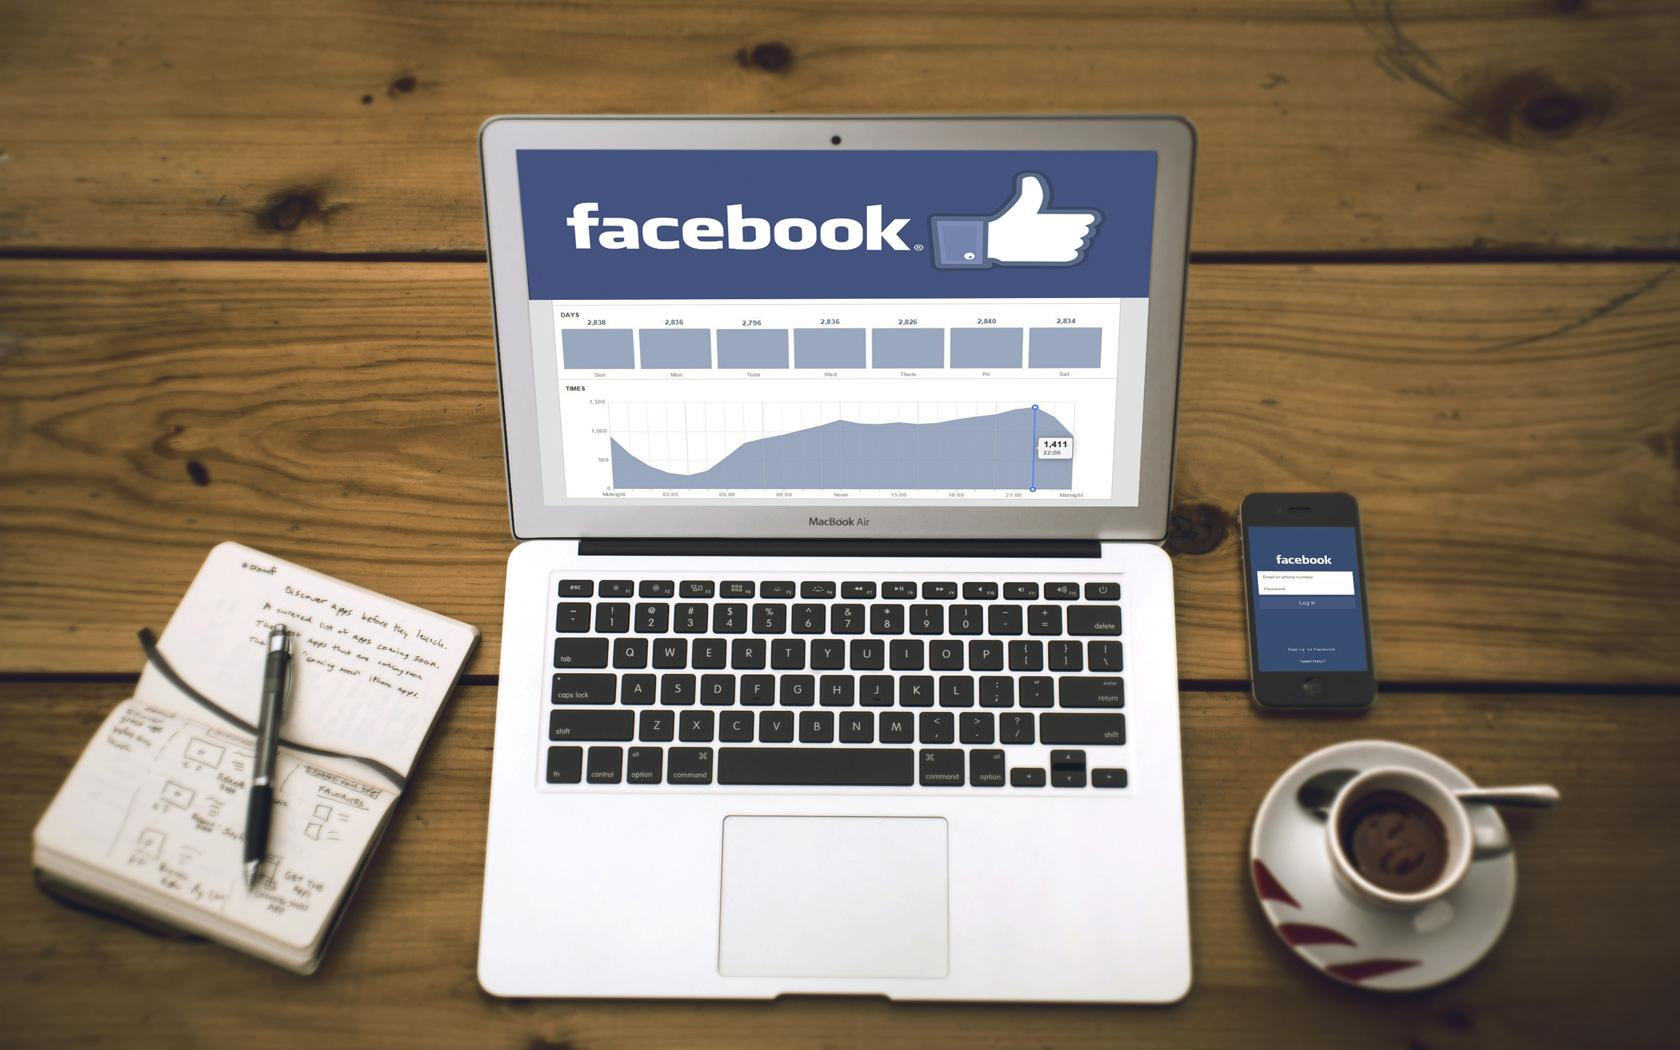 dịch vụ marketing facebook - facebook marketing 1 - Dịch vụ Marketing Facebook